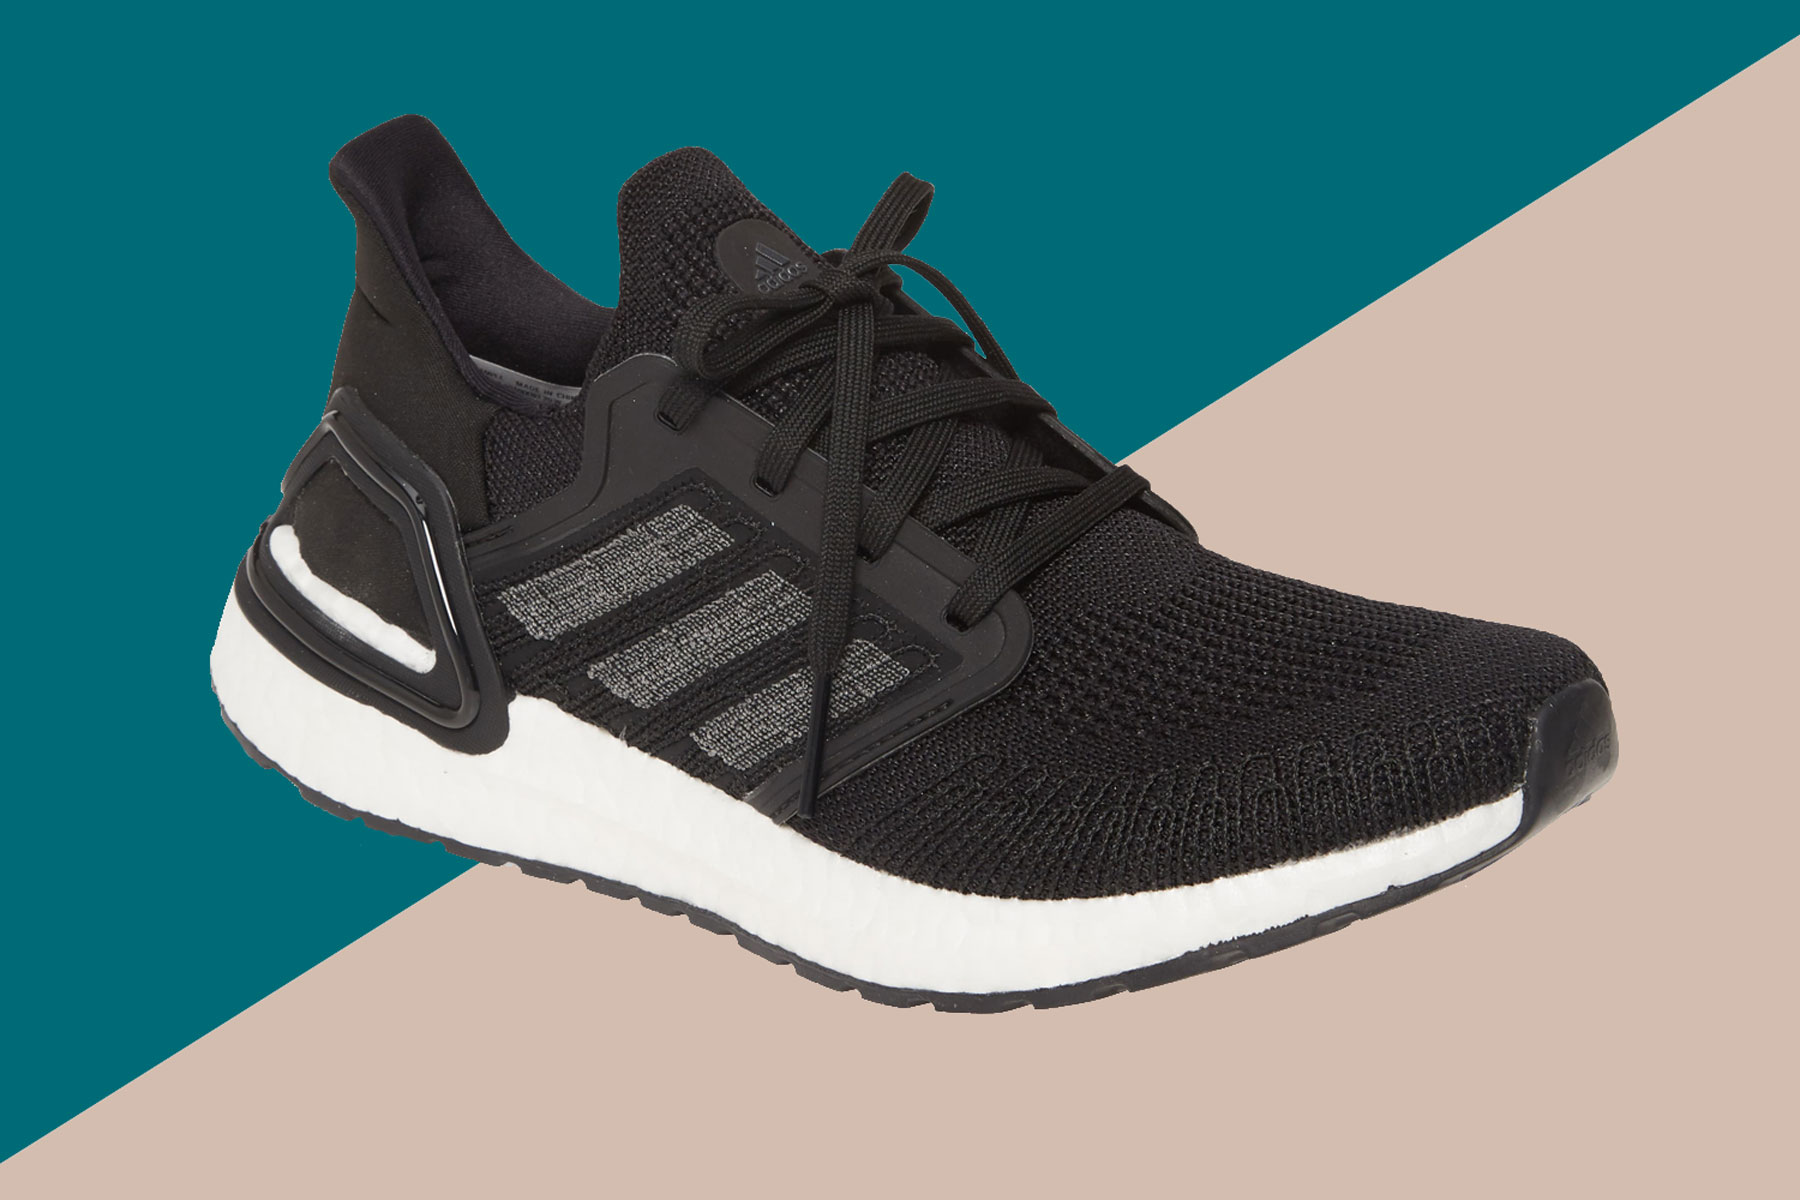 Eclipse solar Mártir Pocos  These Best-selling Running Shoes Are on Sale at Nordstrom Right Now |  Travel + Leisure | Travel + Leisure